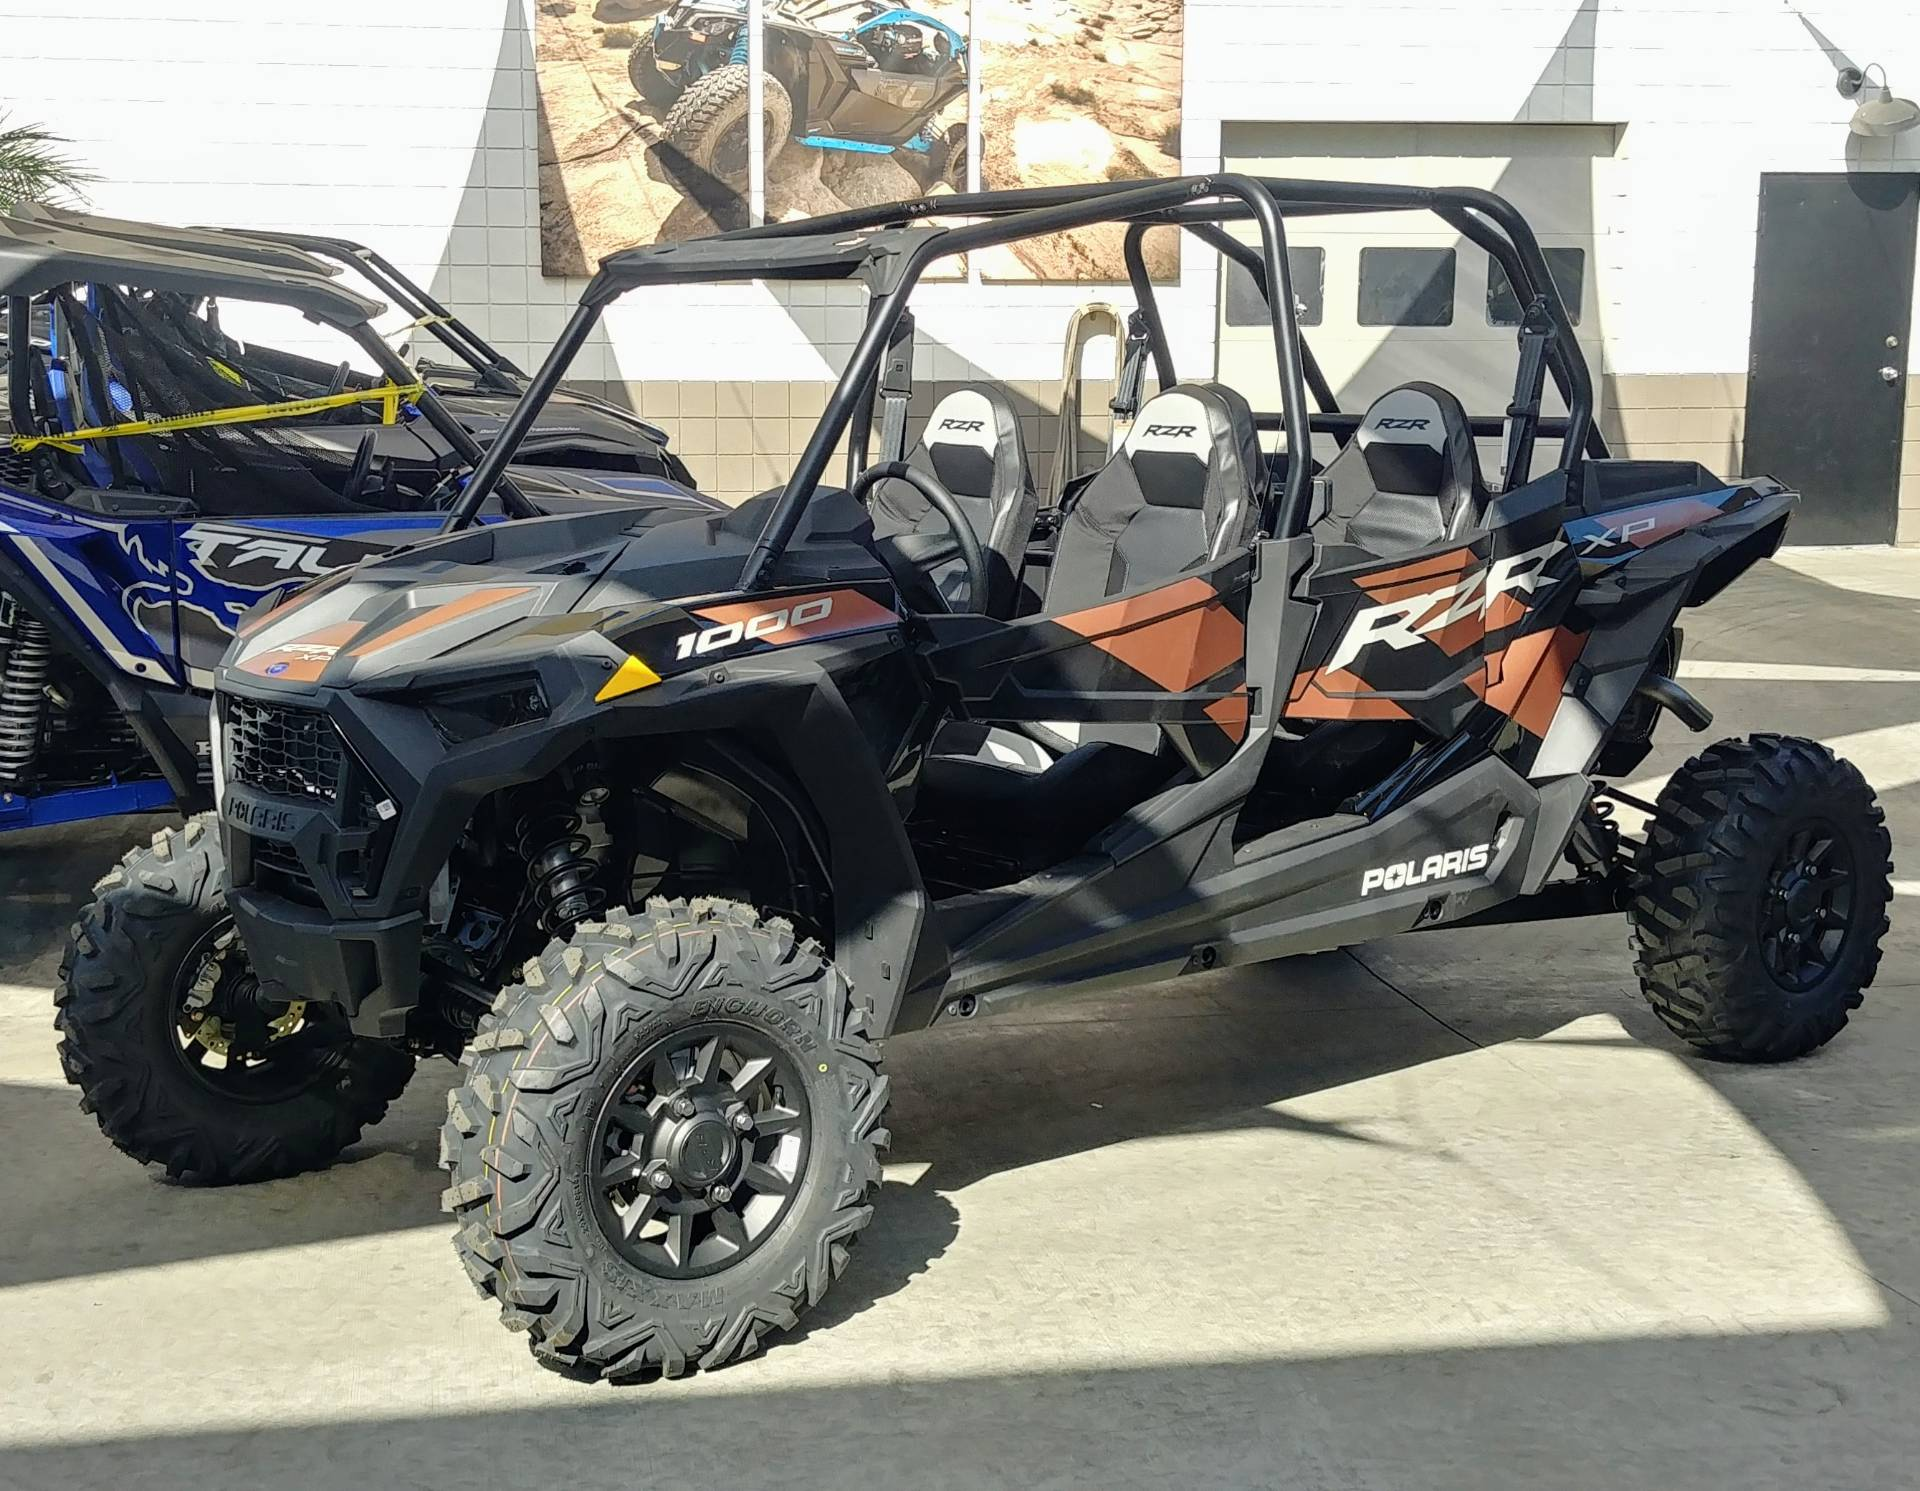 2021 Polaris RZR XP 4 1000 Sport in Ontario, California - Photo 10